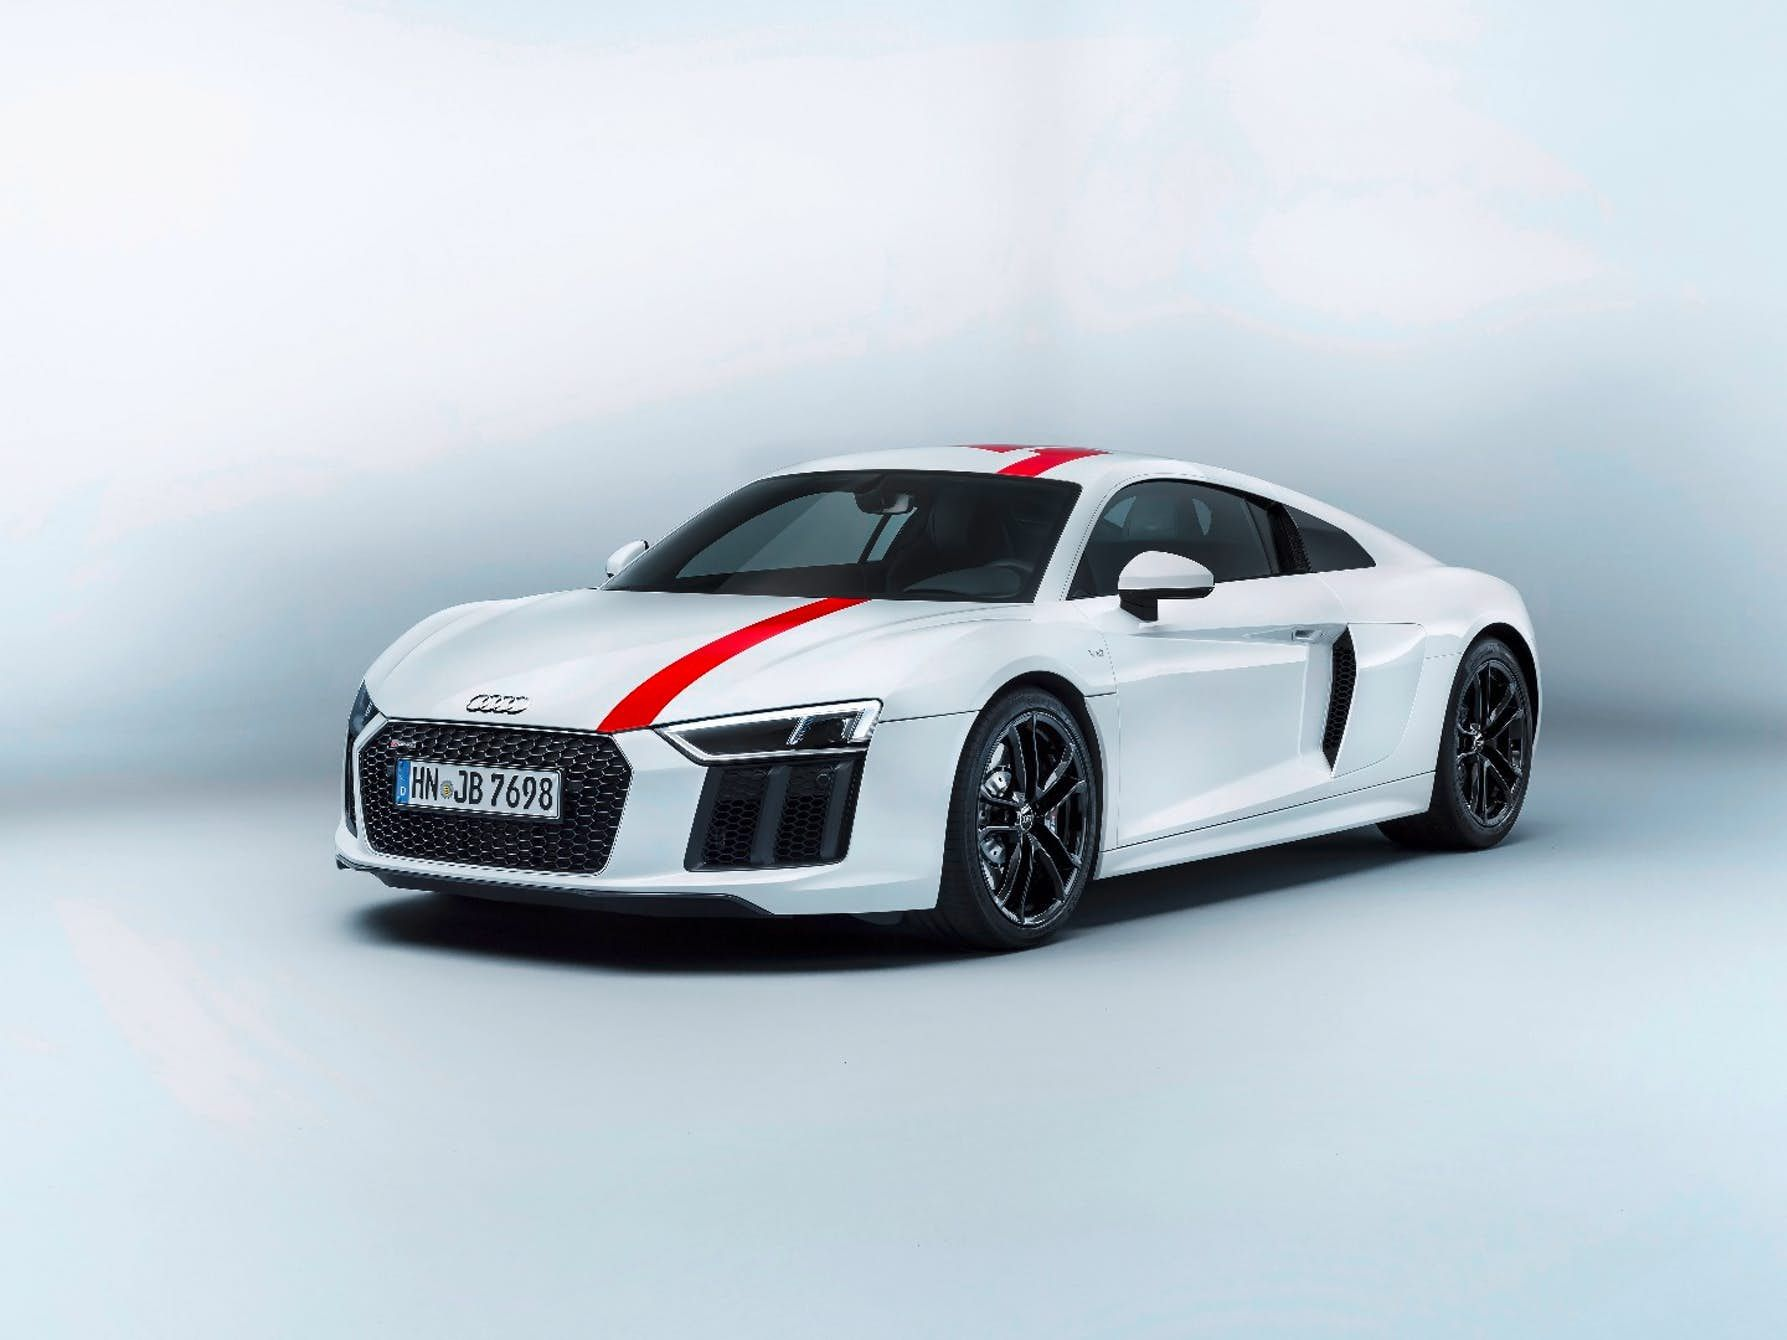 Audi Creates Limited Run R8 V10 Rws For Controlled Drifters Audi R8 V10 Audi R8 Price Performance Cars